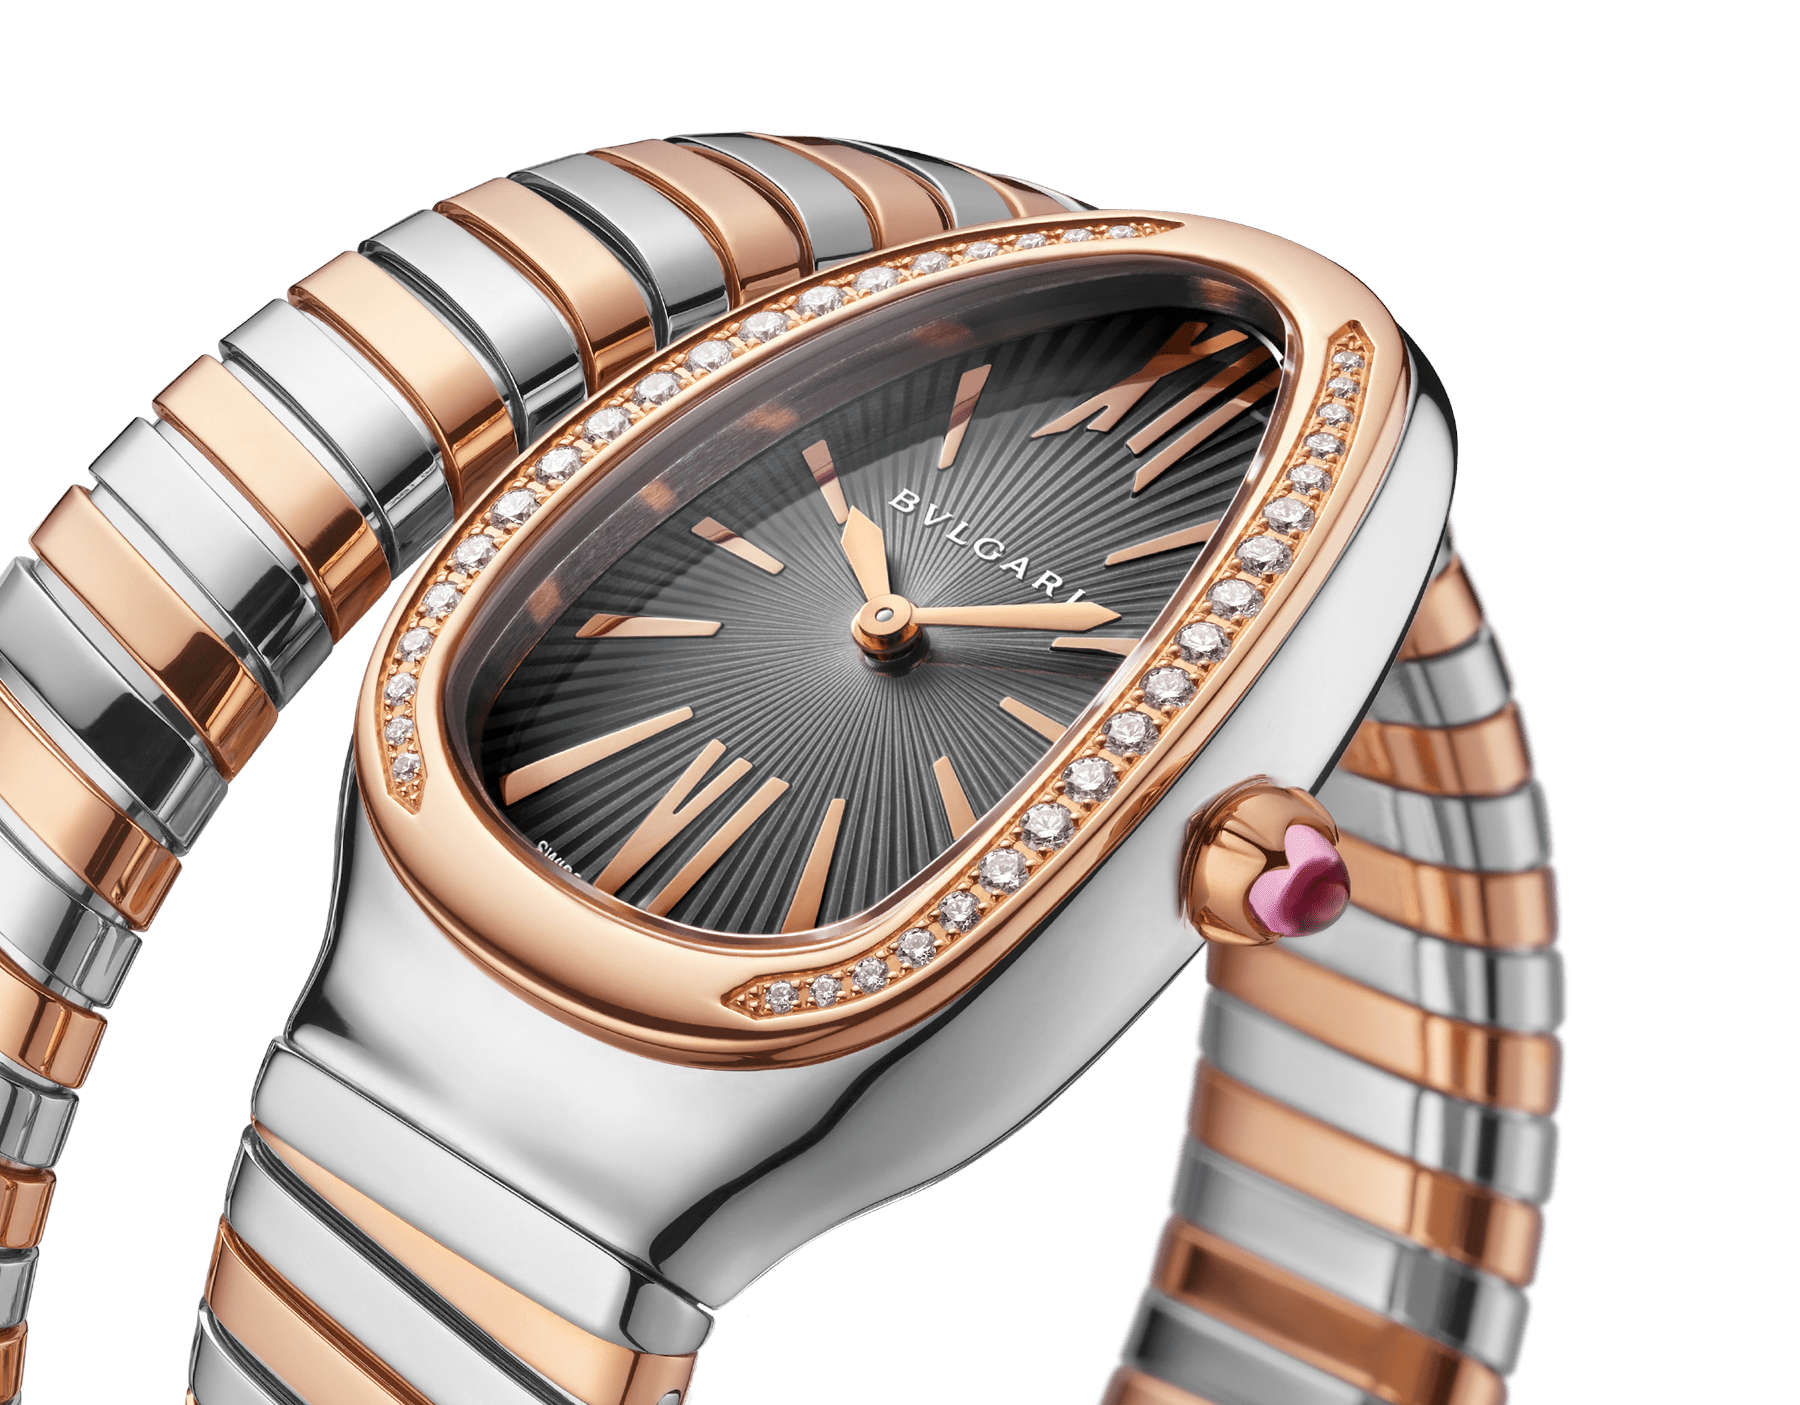 Serpenti Tubogas single spiral watch with stainless steel case, 18 kt rose gold bezel set with brilliant cut diamonds, grey lacquered dial, 18 kt rose gold and stainless steel bracelet. 102681 image 3